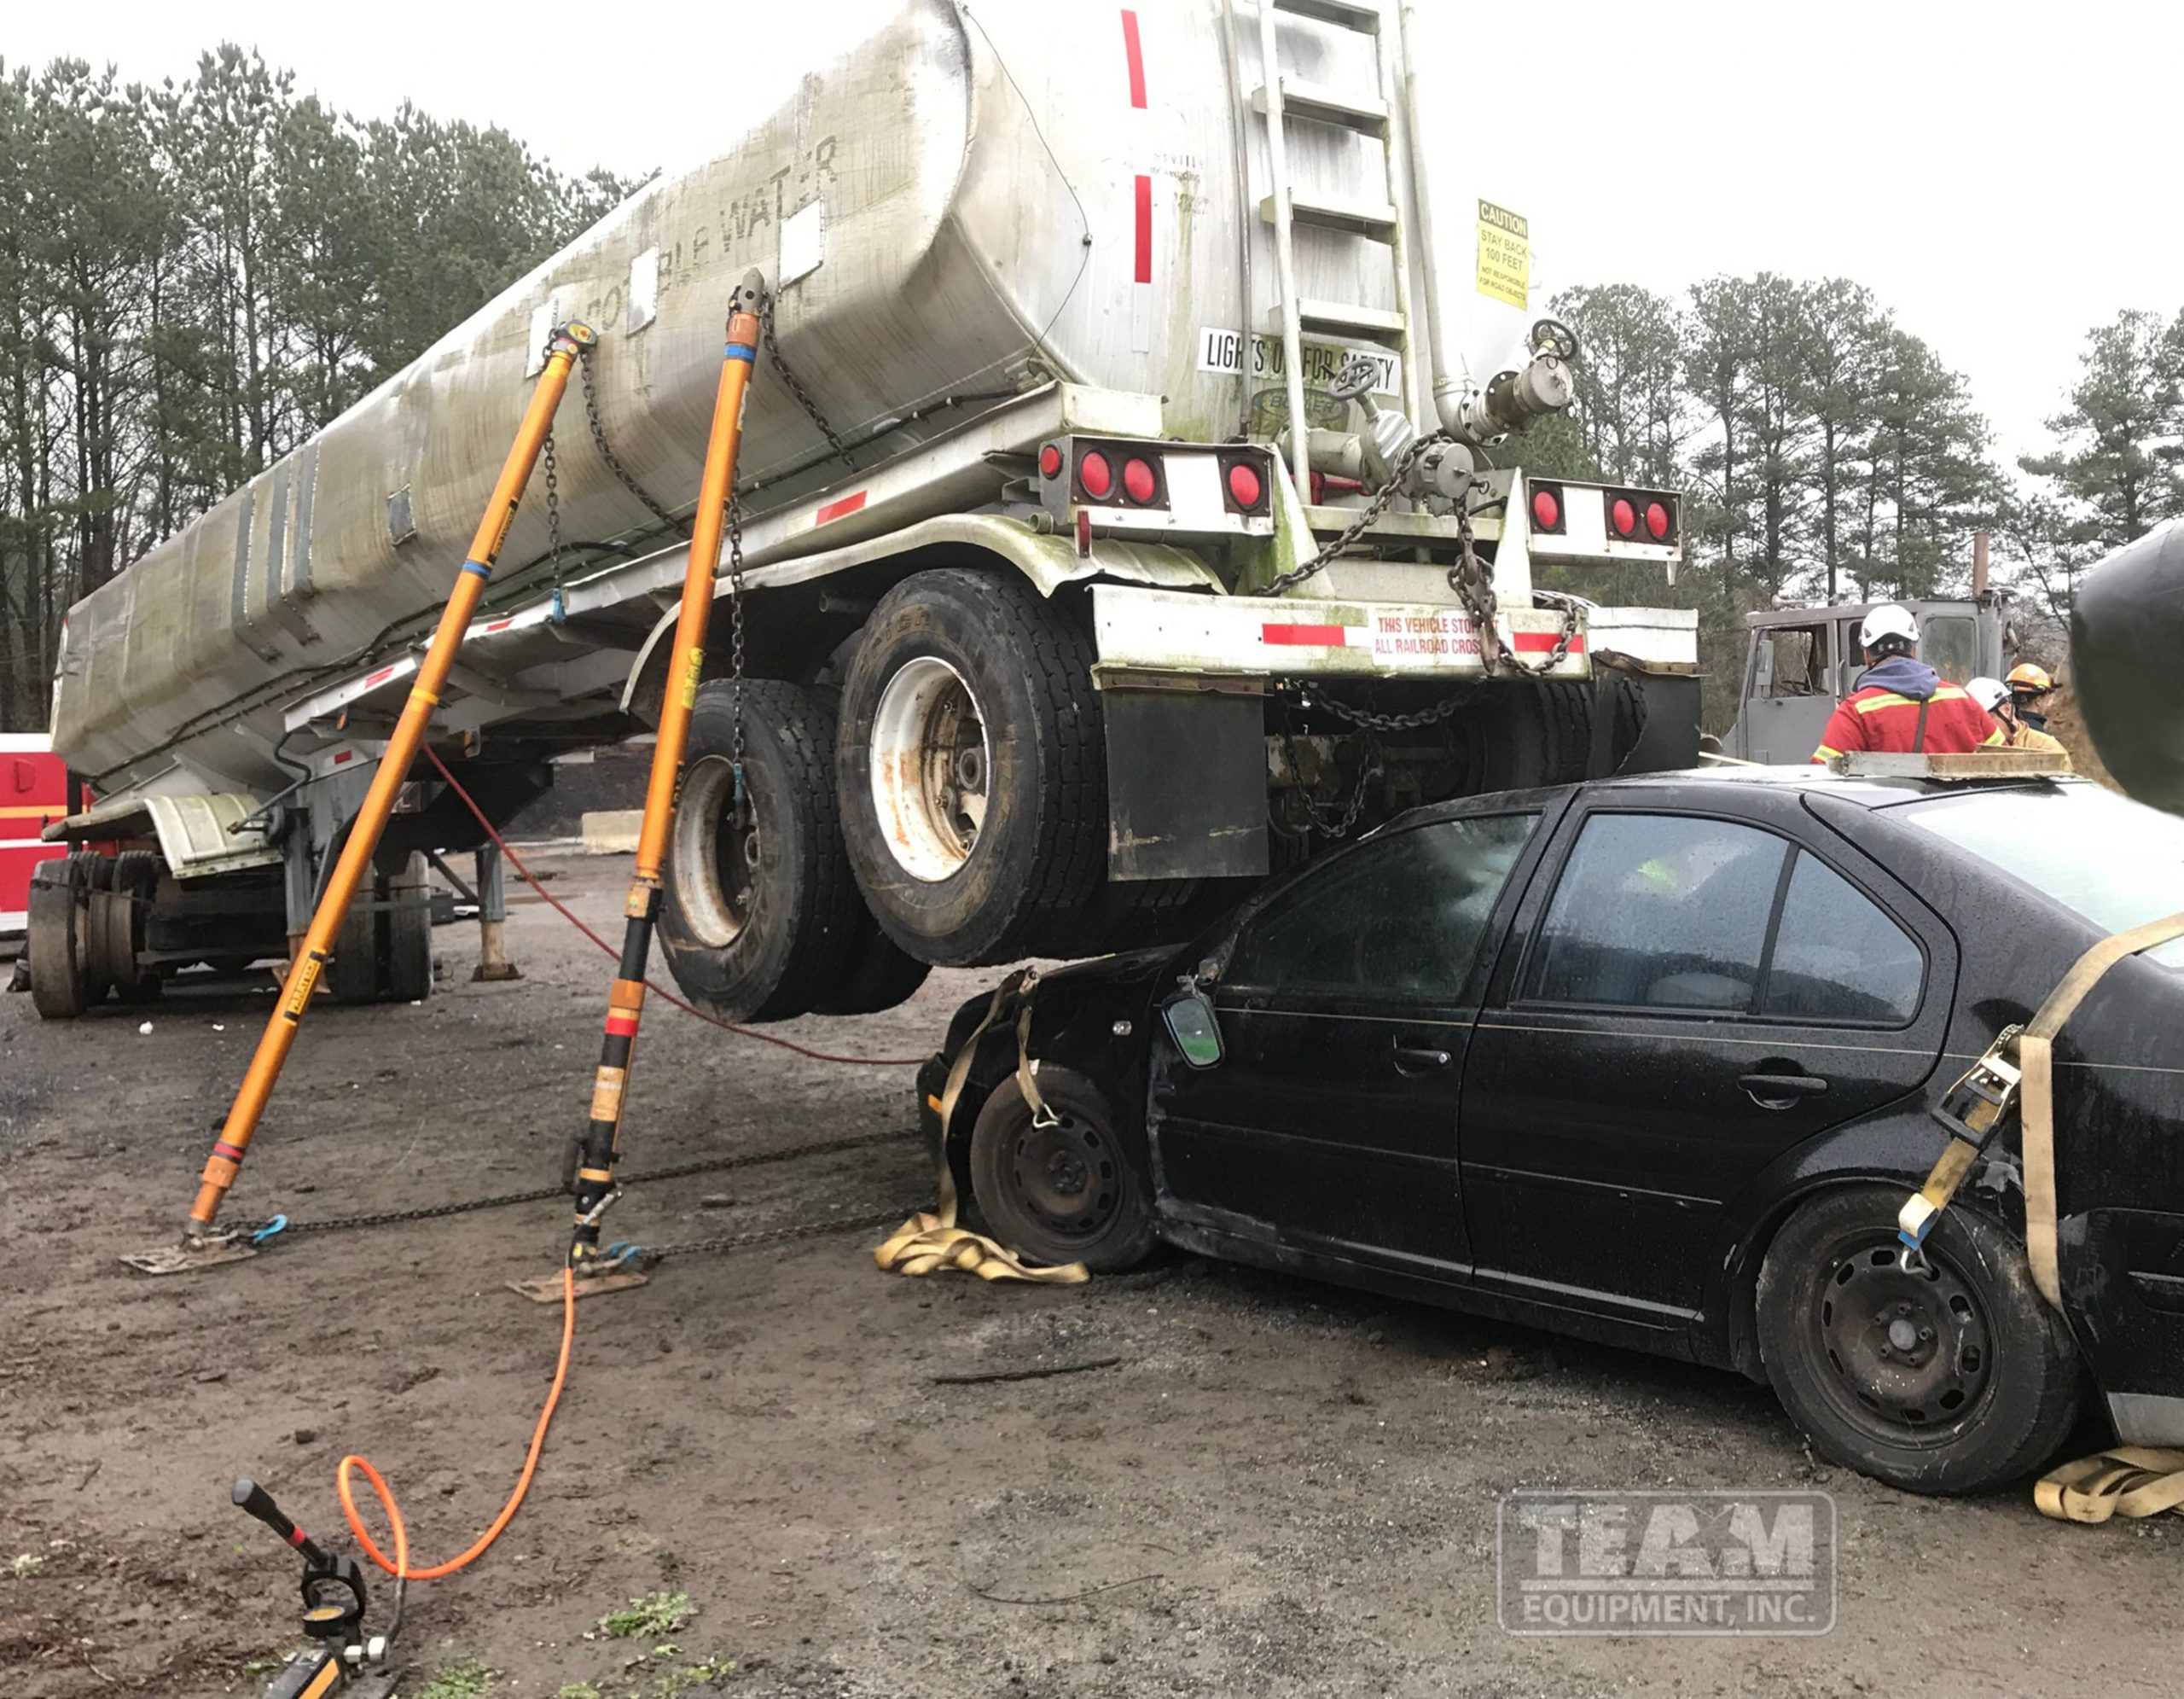 Paratech vehicle stabilization and lifting